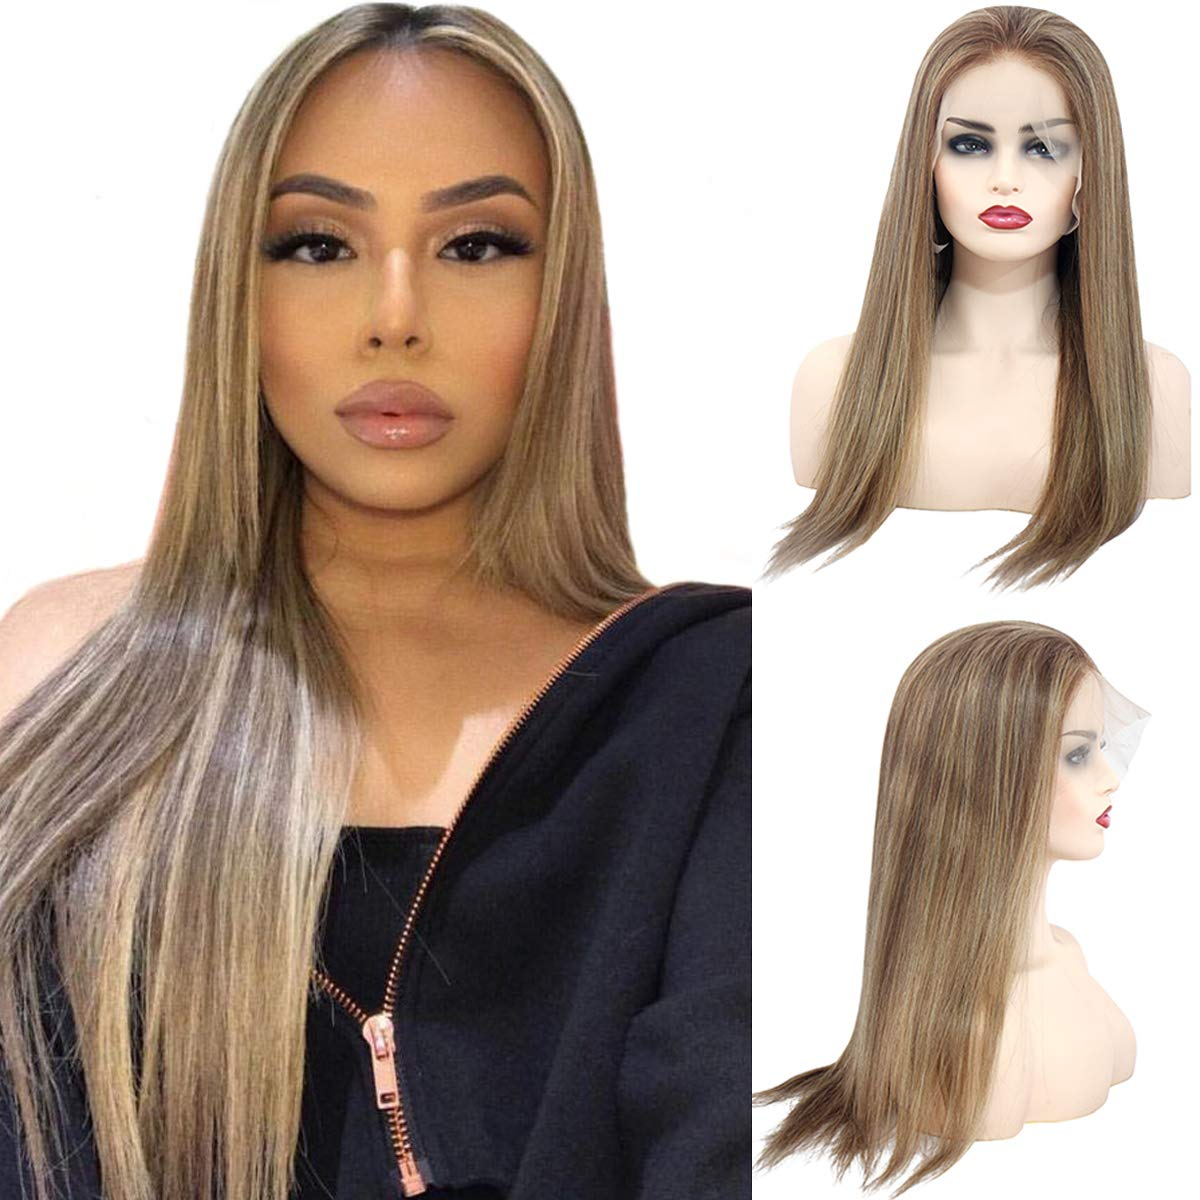 Ombre Balayage Lace Front Human Hair Wigs Chestnut Brown to Beige Blonde Highlights Straight Remy Hair Glueless Lace Frontal Blonde Wig Pre Plucked for White Women 14 Inch